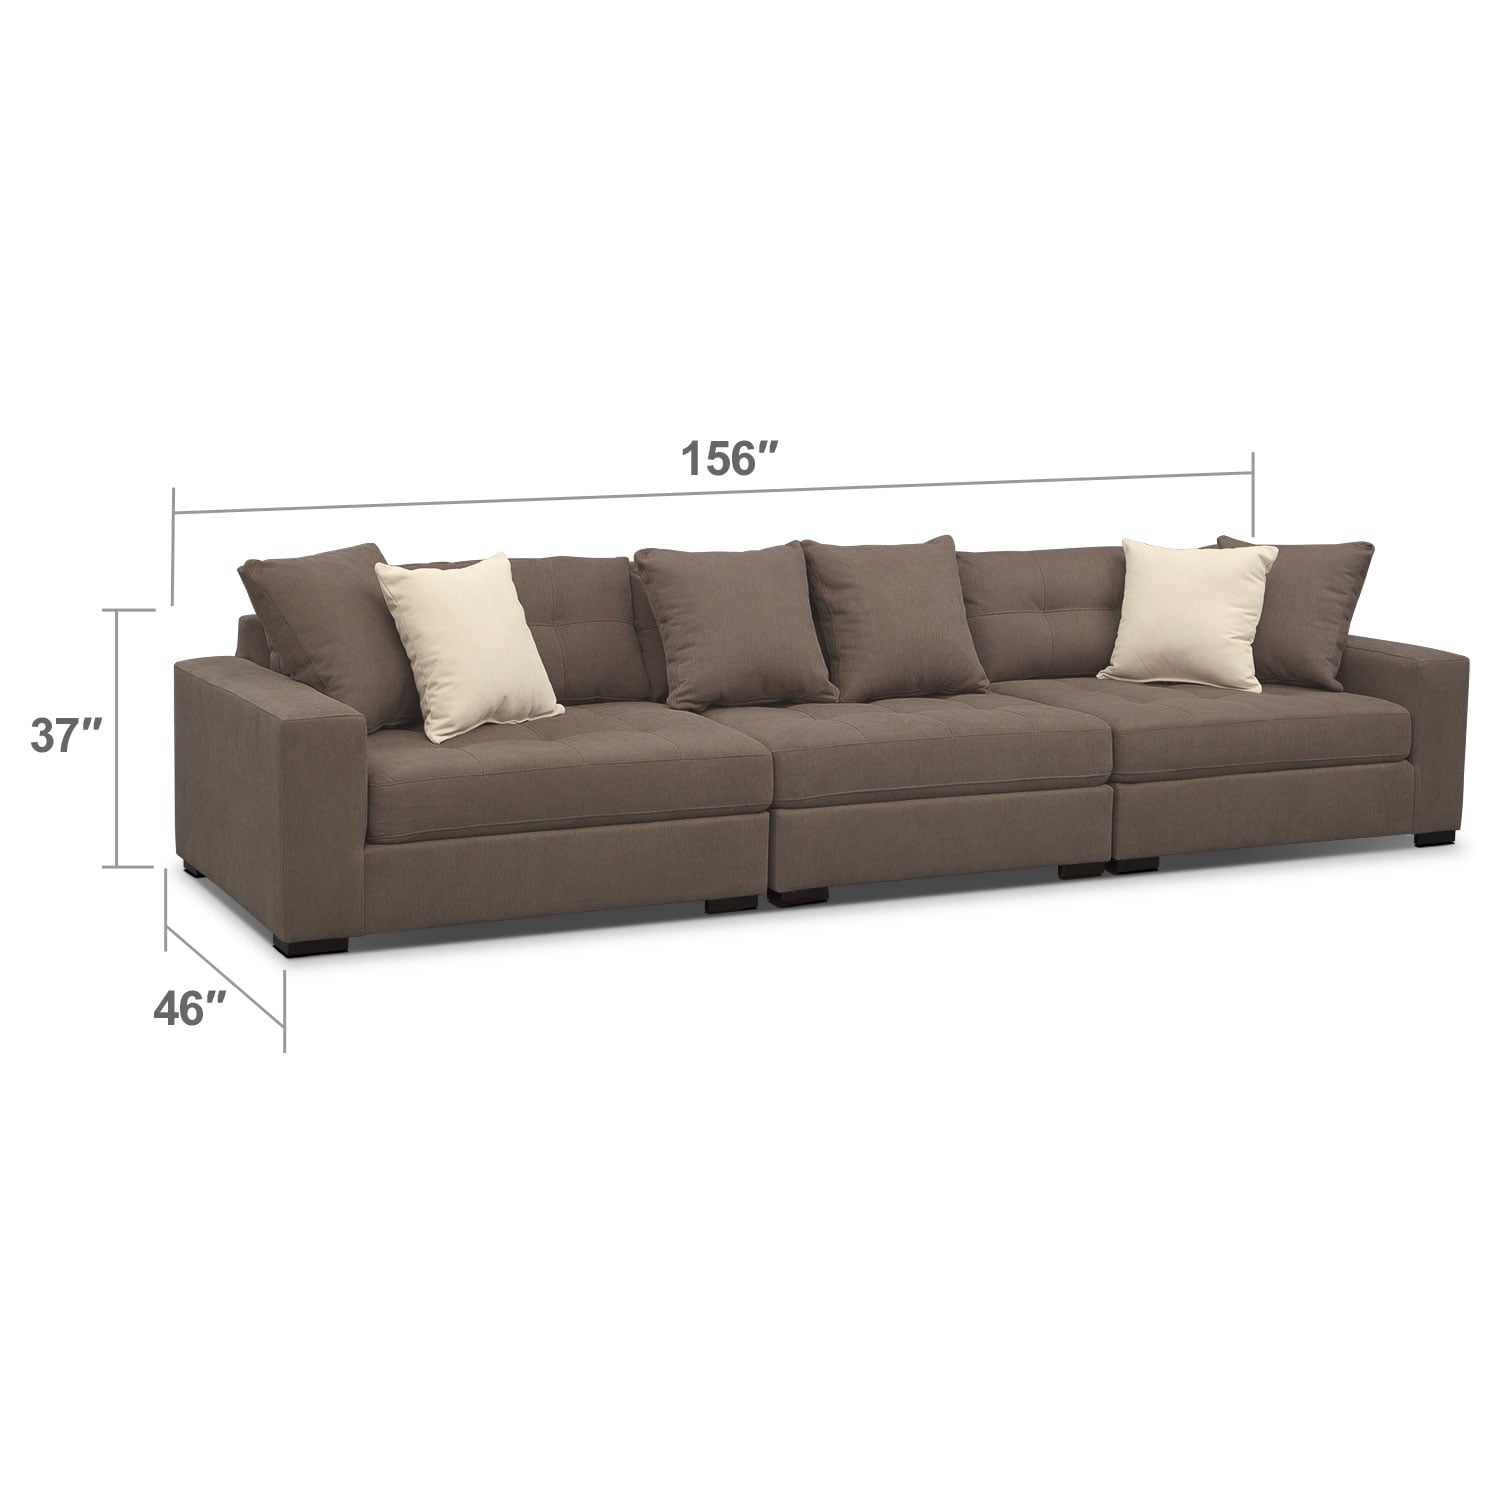 Living Room Furniture - Venti Mocha 3 Pc. Sectional